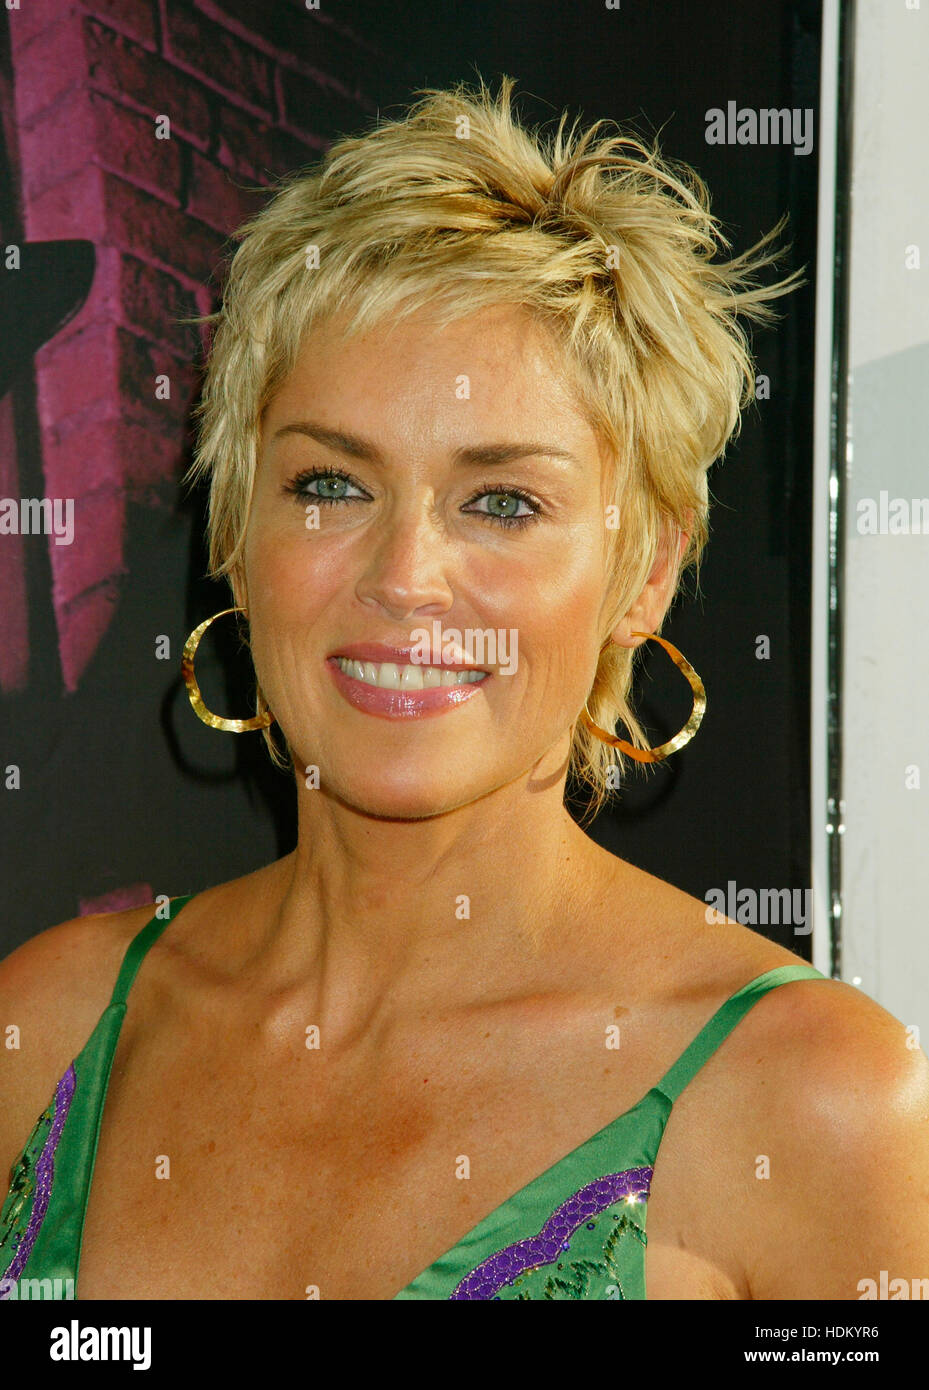 Actress Sharon Stone At The Premiere For The Film Catwoman In Los